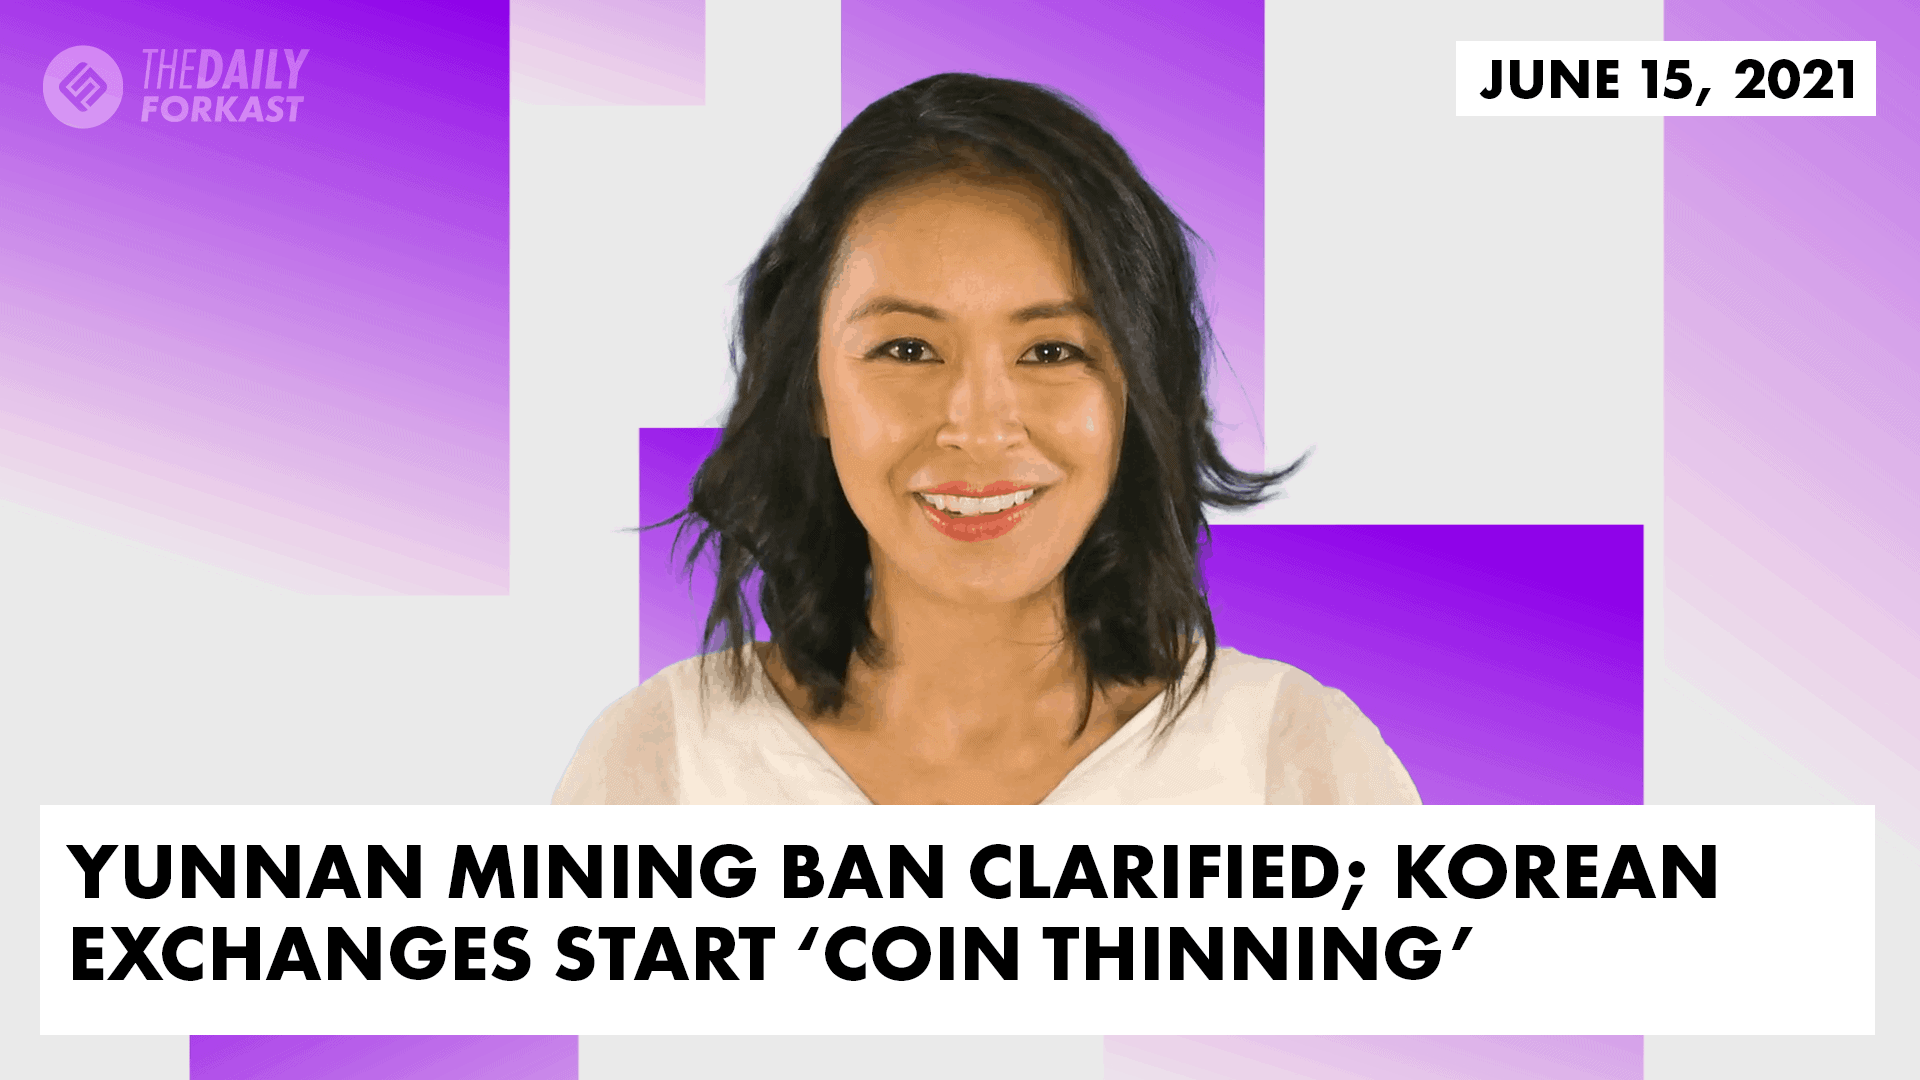 Yunnan mining ban clarified; Korean exchanges start 'coin thinning' | The Daily Forkast